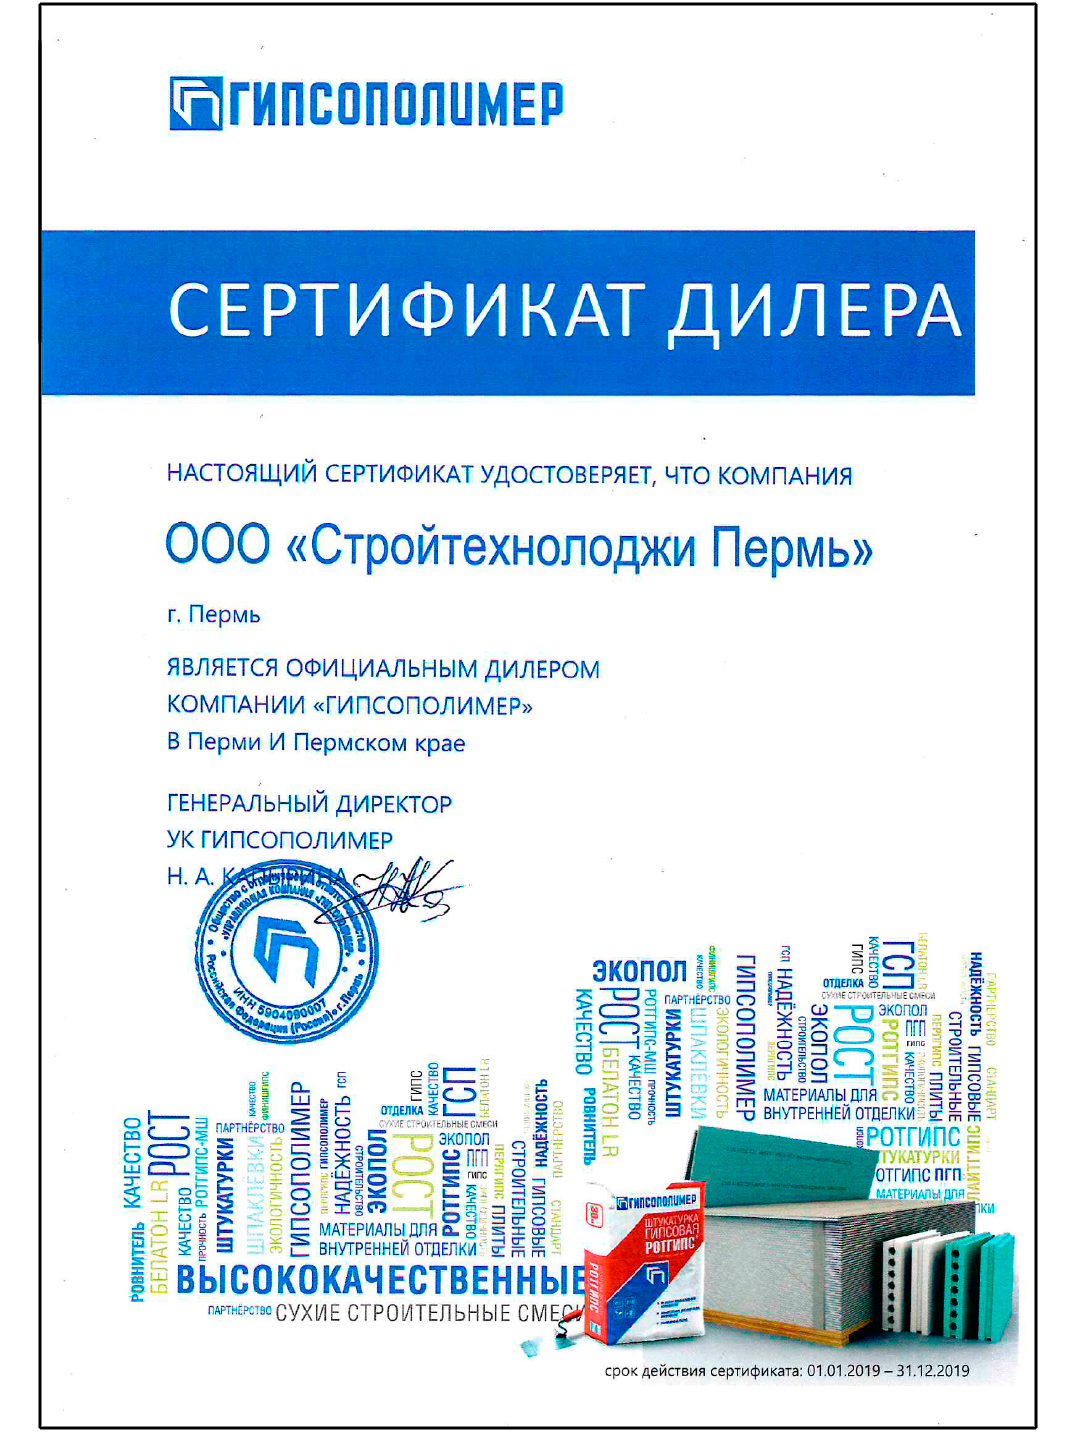 https://st-perm.ru/image/catalog/certificate/gipsopolymer1.png